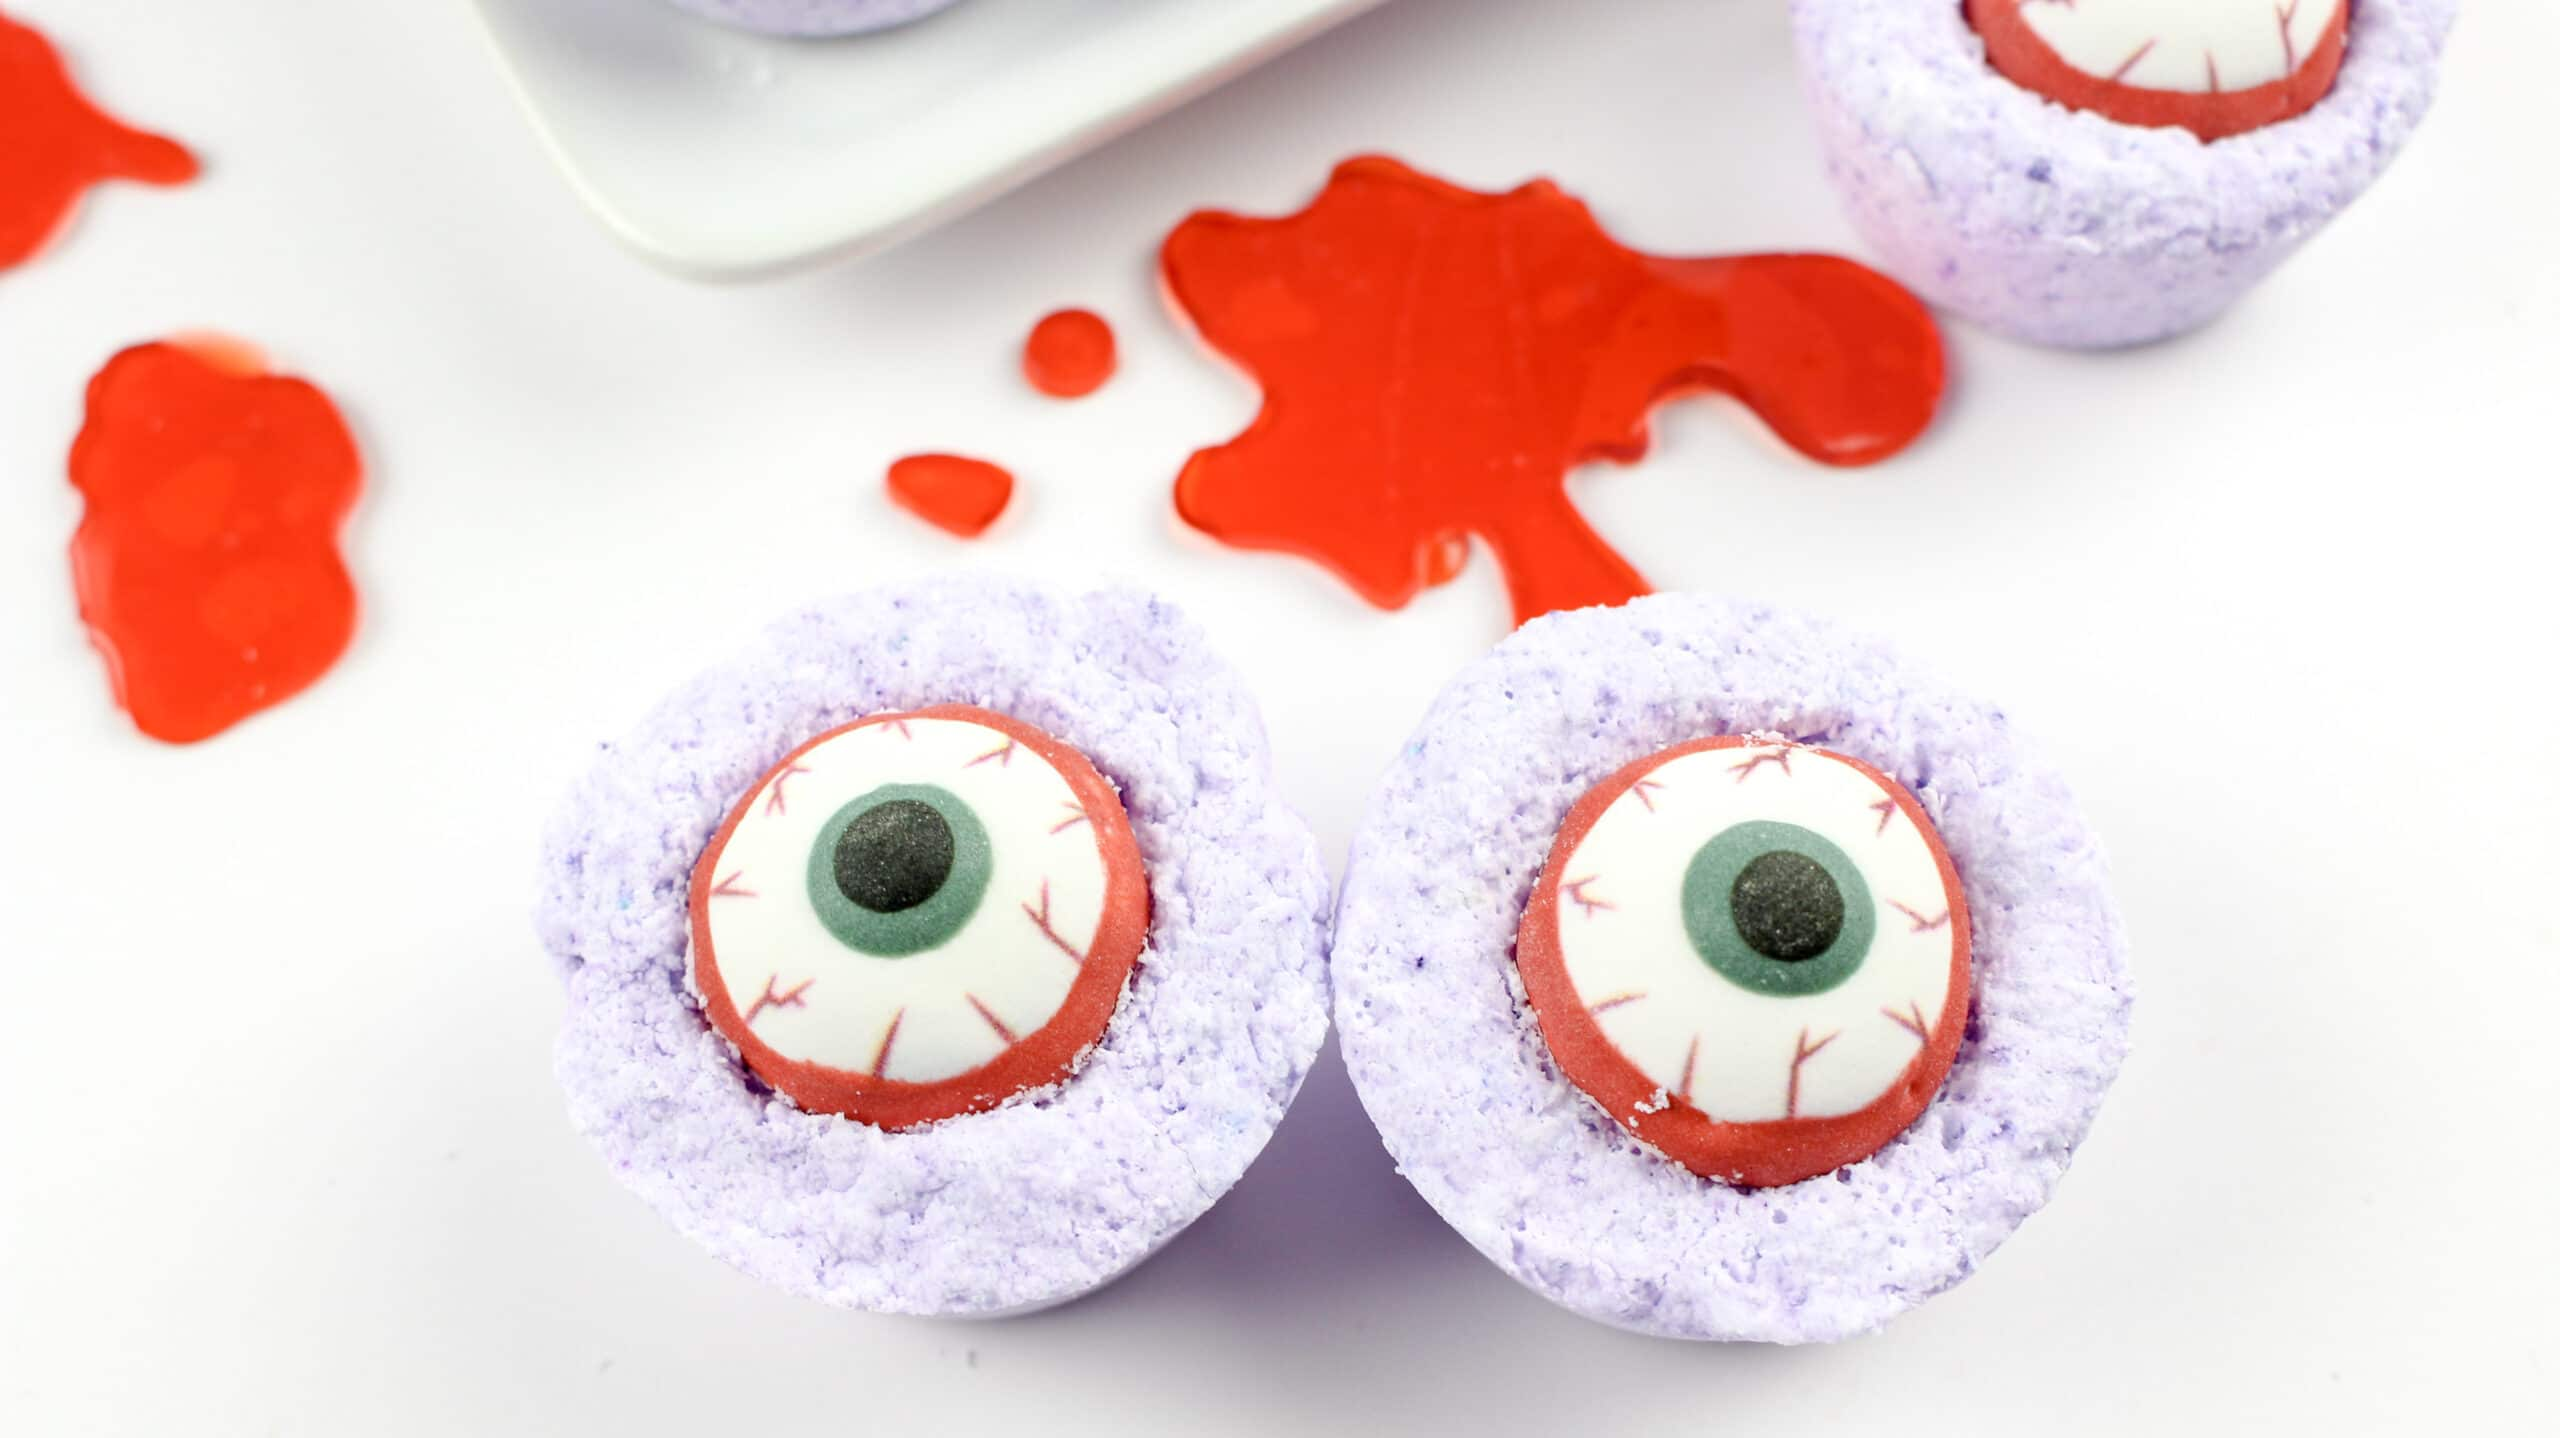 Pair of Zombie Eyes Bath Bombs. Create your very own DIY Zombie Eyes Bath Bombs.